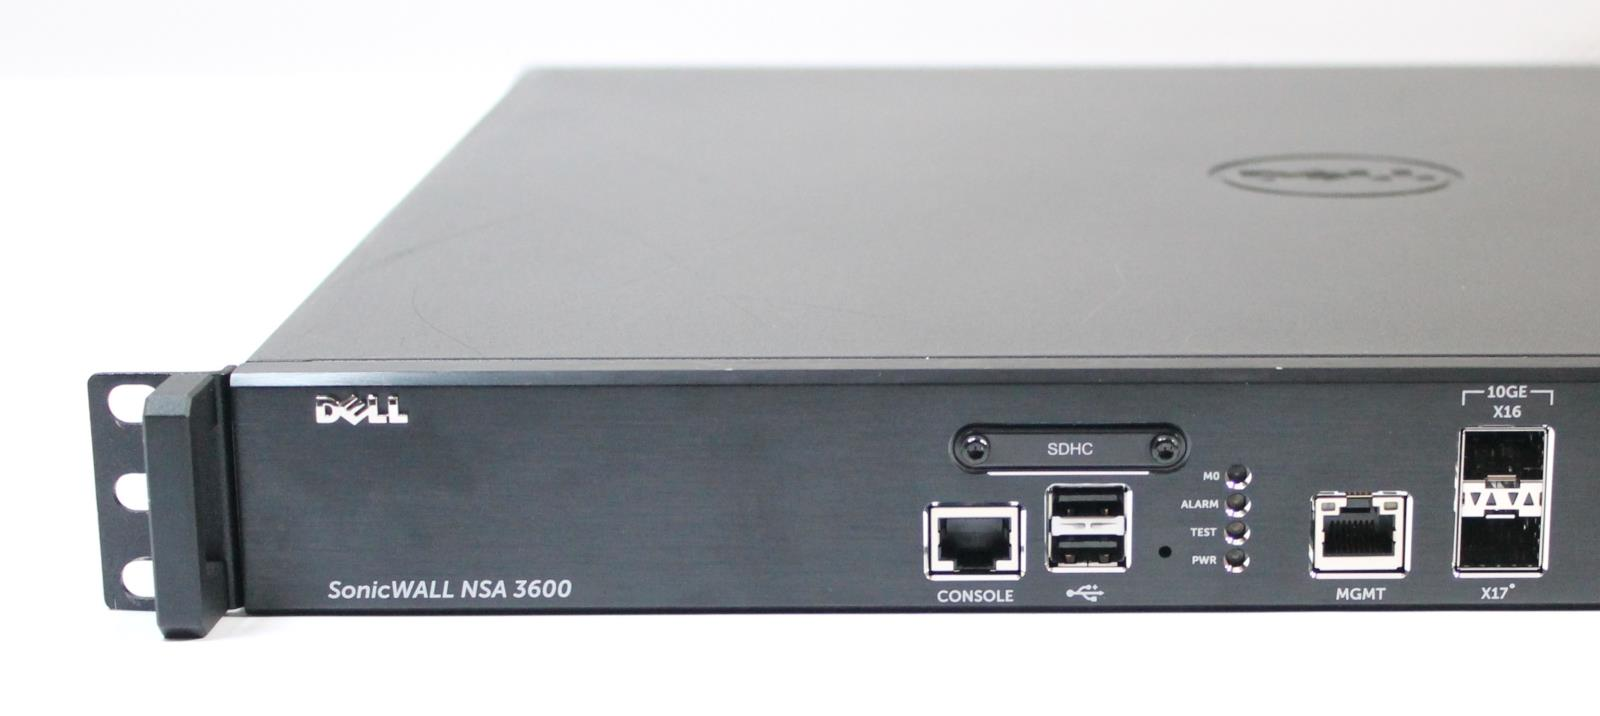 Dell Sonicwall Nsa 3600 Network Security Appliance